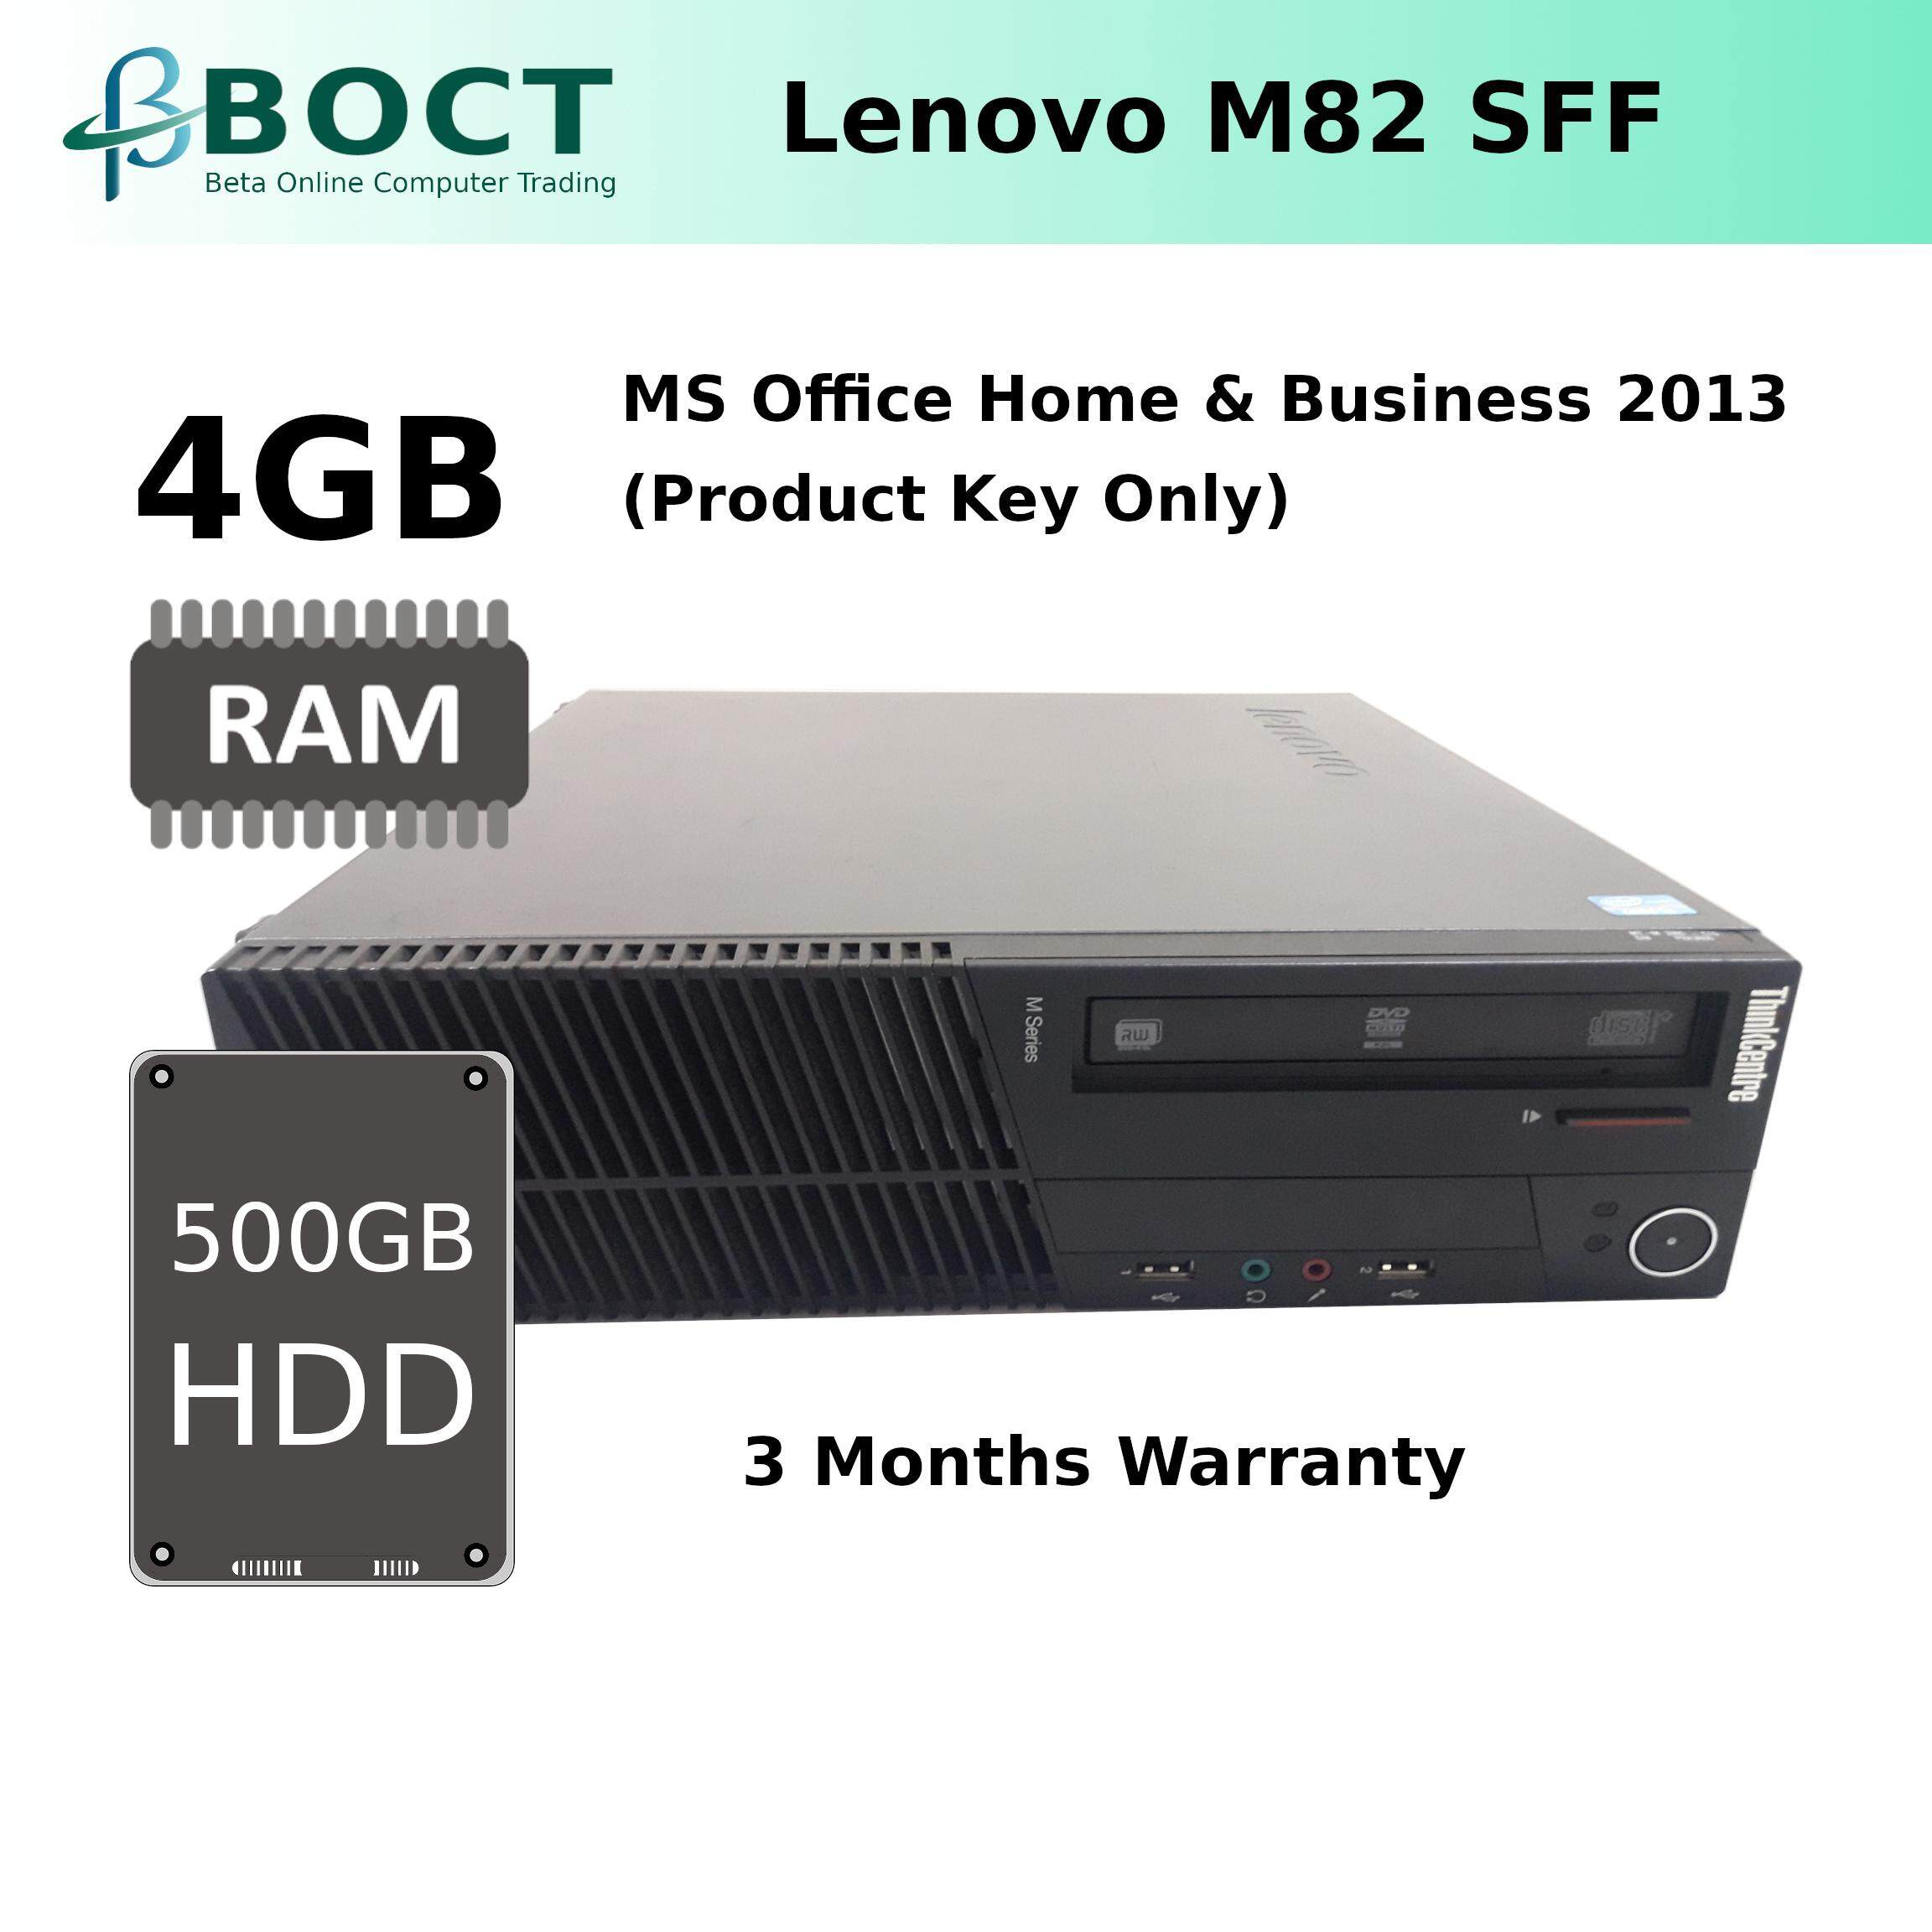 Lenovo ThinkCentre M82 SFF PC i5 3 0GHz/ DVD-RW/ Win 10 Pro/ MS Office Home  & Business 2013 (Product Key Only)/ Maximum 1 Year Warranty (Refurbished)